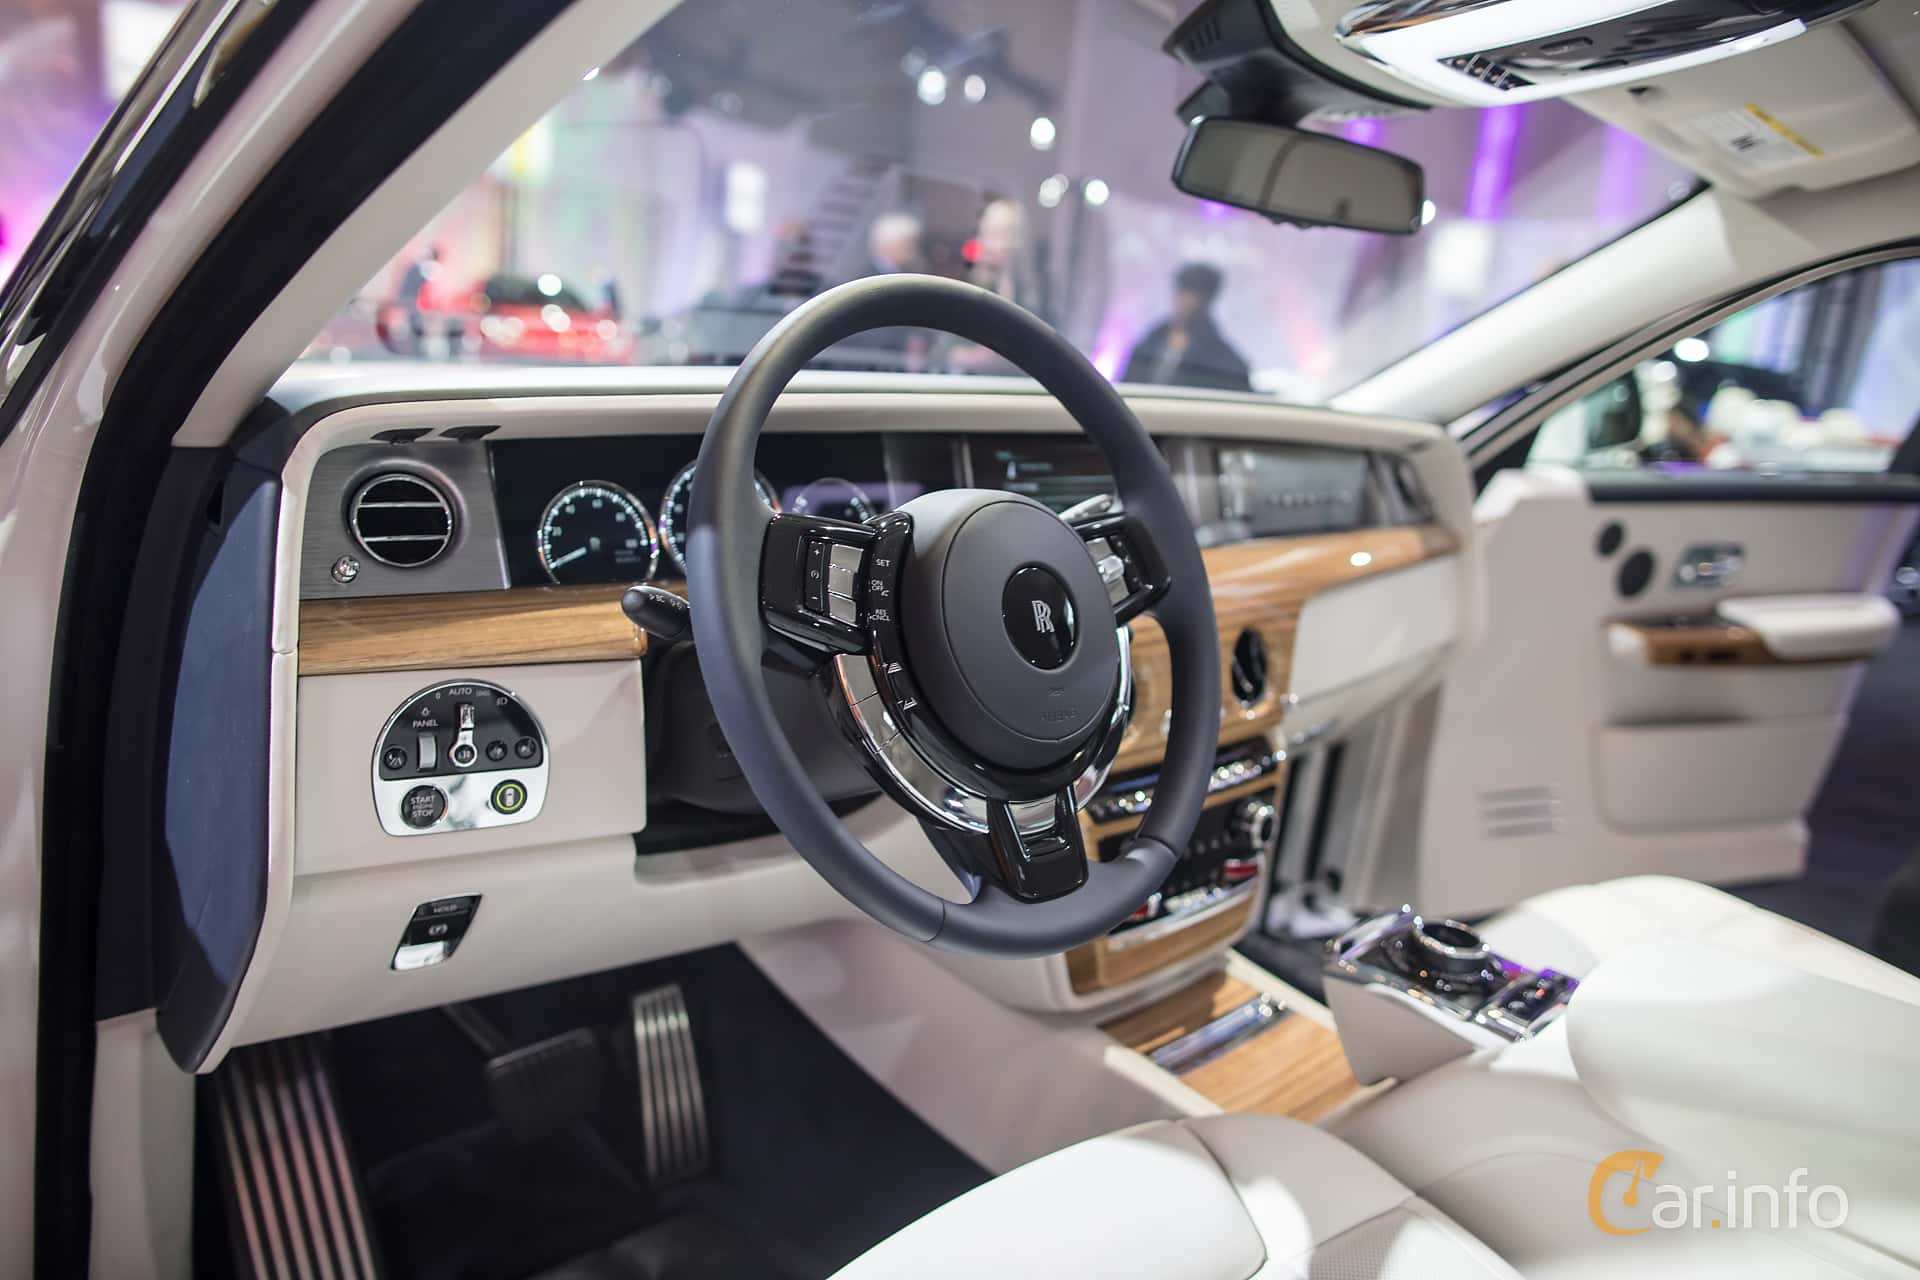 Rolls Royce Phantom 6 7 V12 Automatic 571hp 2018 At North American International Auto Show 2018